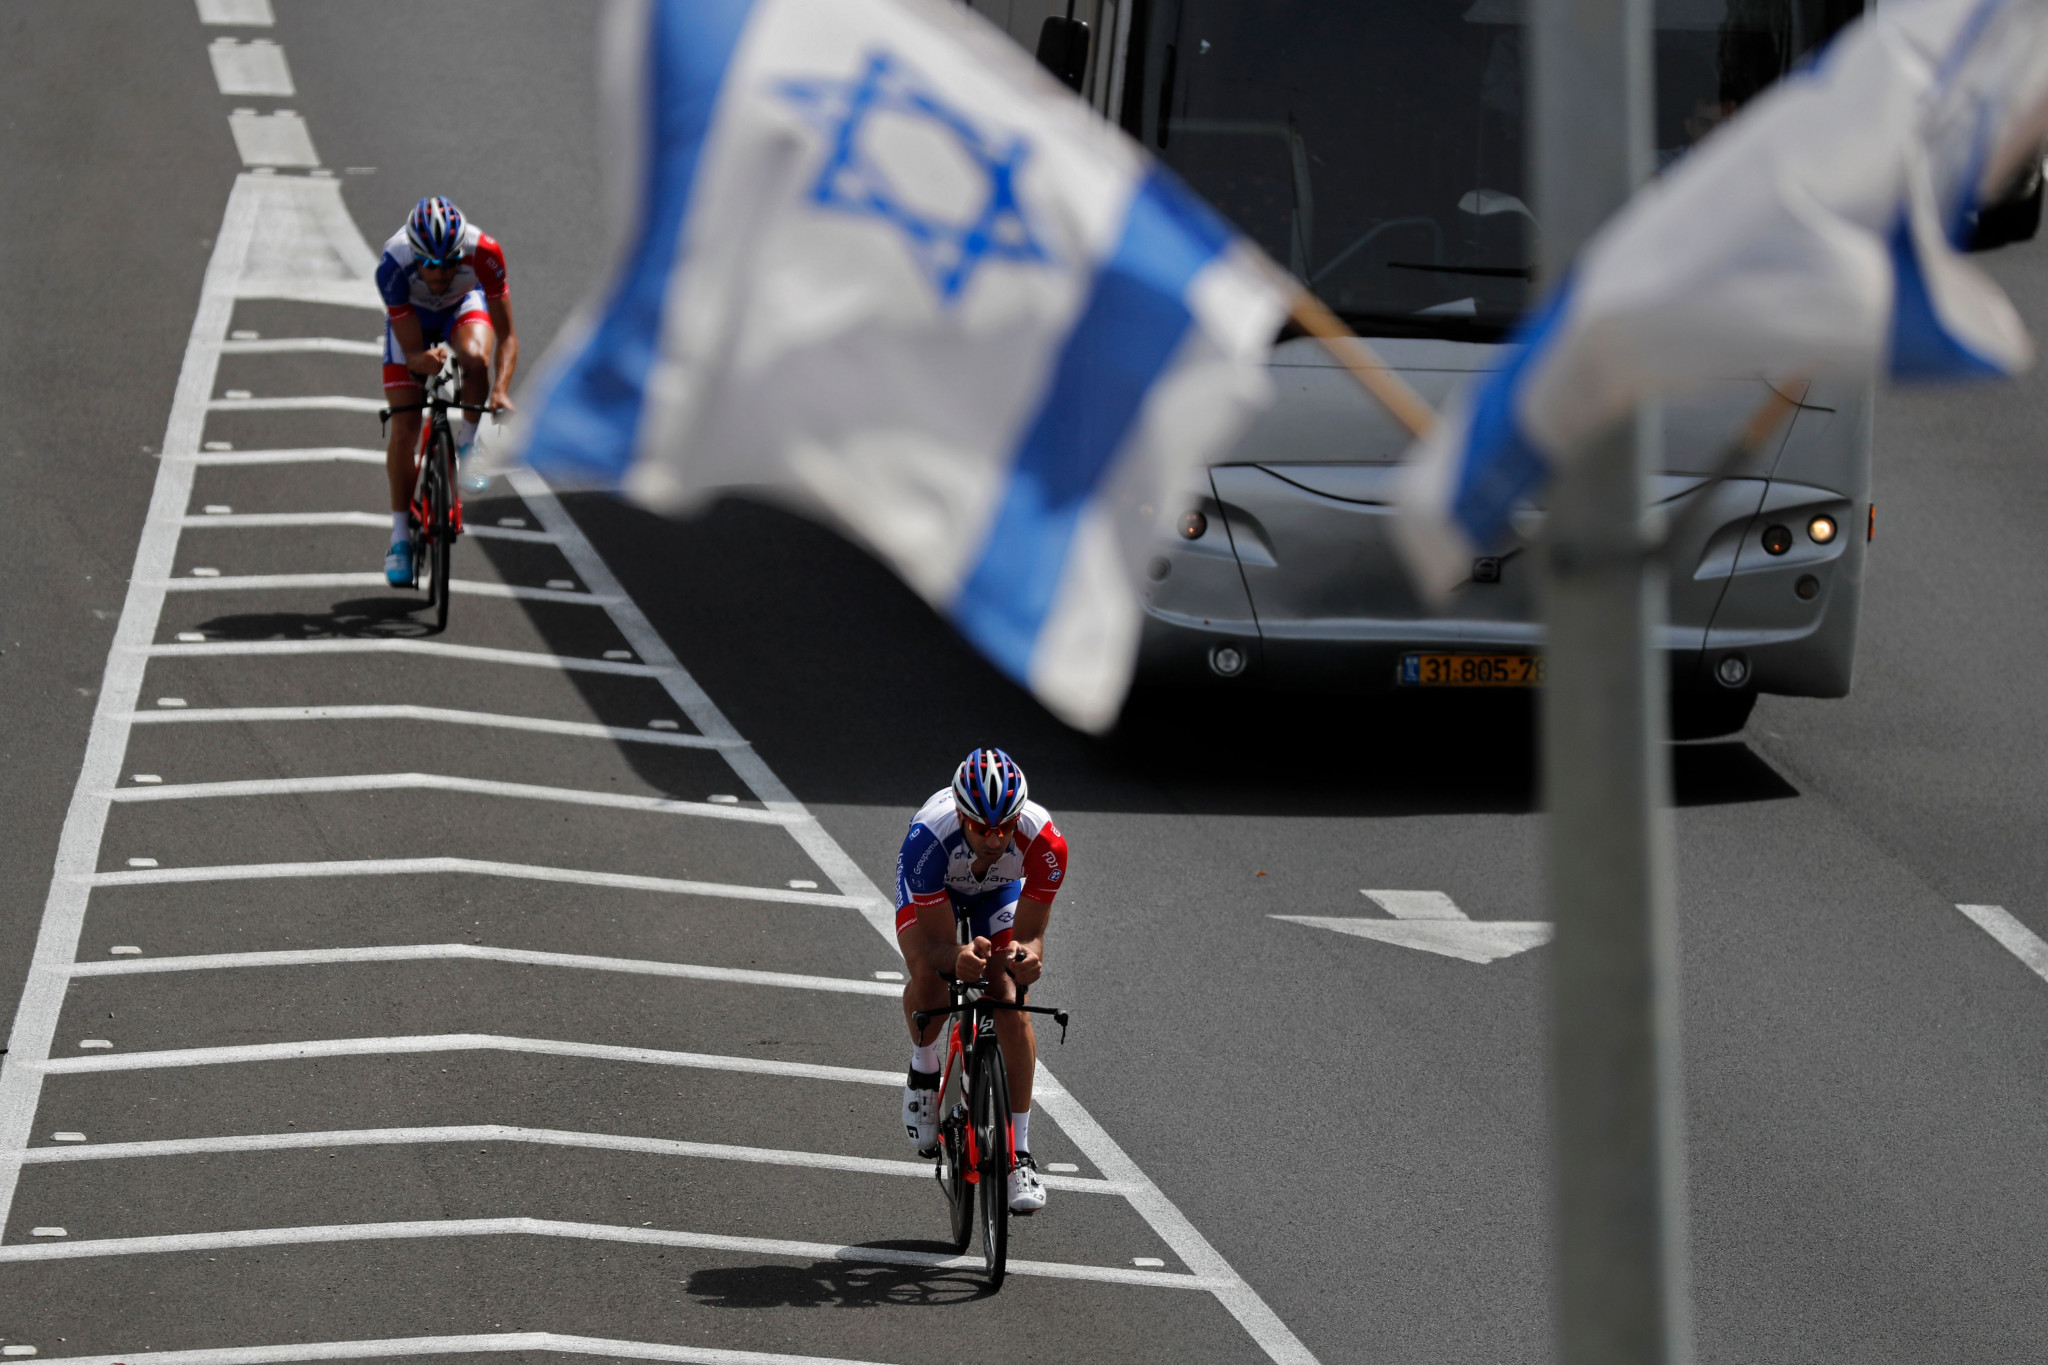 Jerusalem is set to stage the Big Start of the Giro d'Italia amid controversy